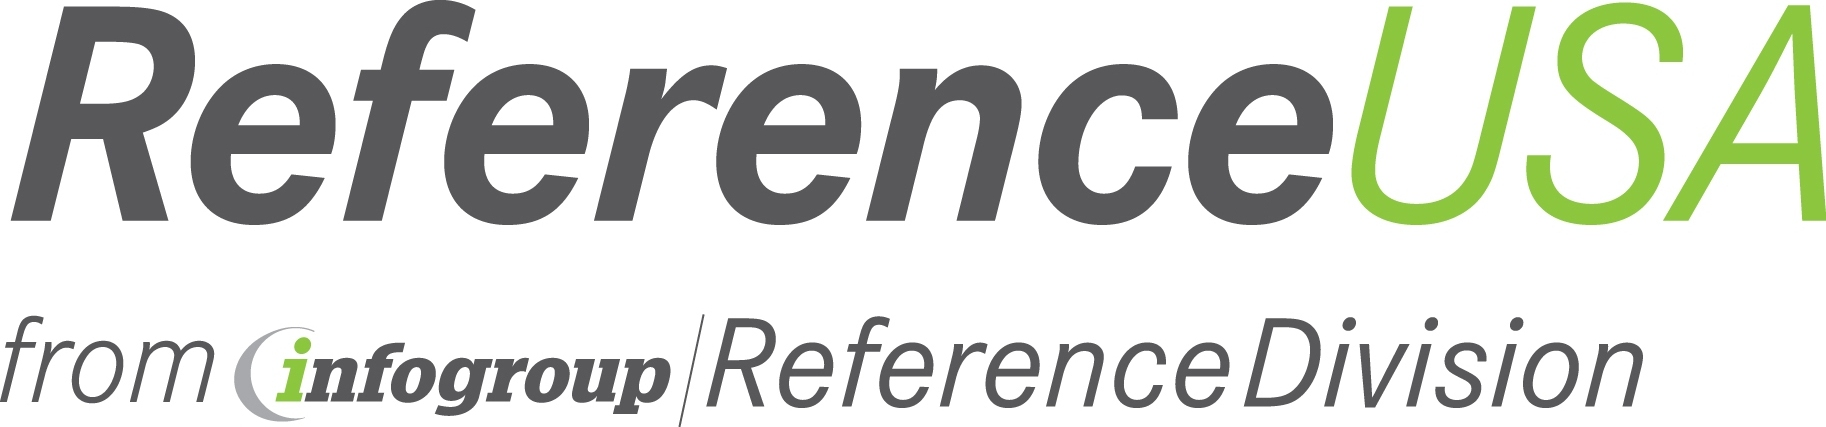 ReferenceUSA Logo Opens in new window